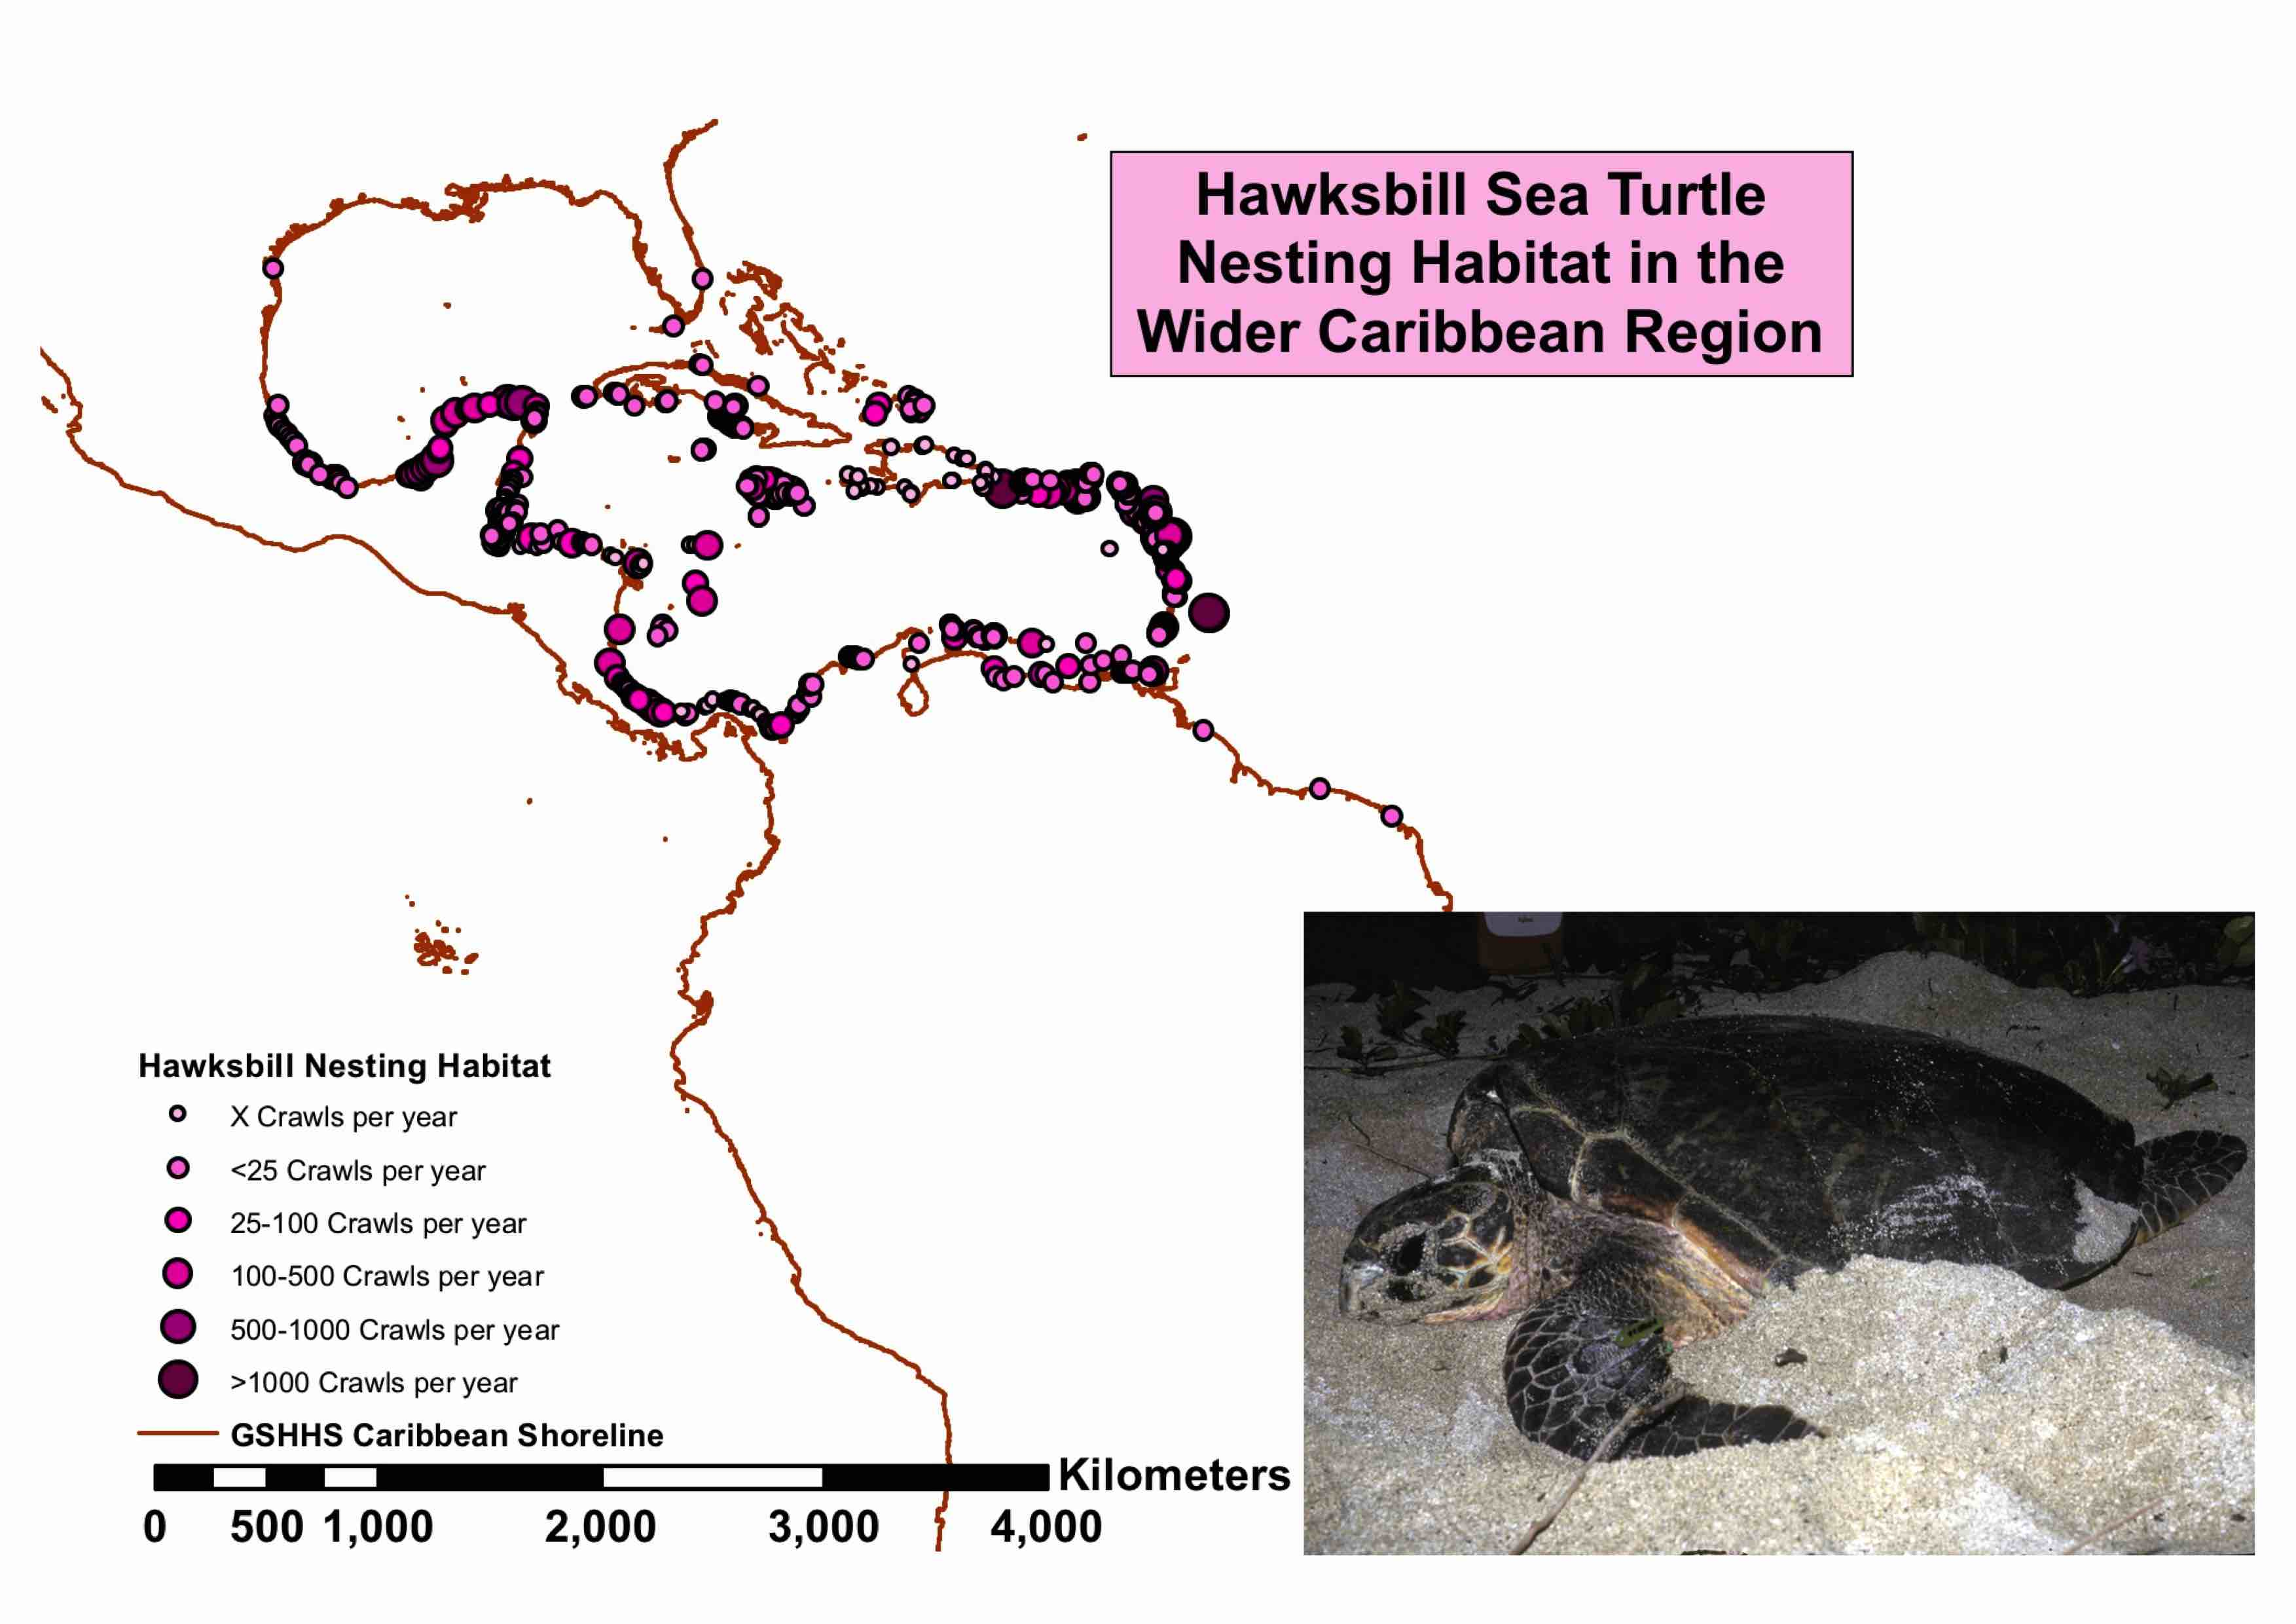 Hawksbill Turtle Population Trends